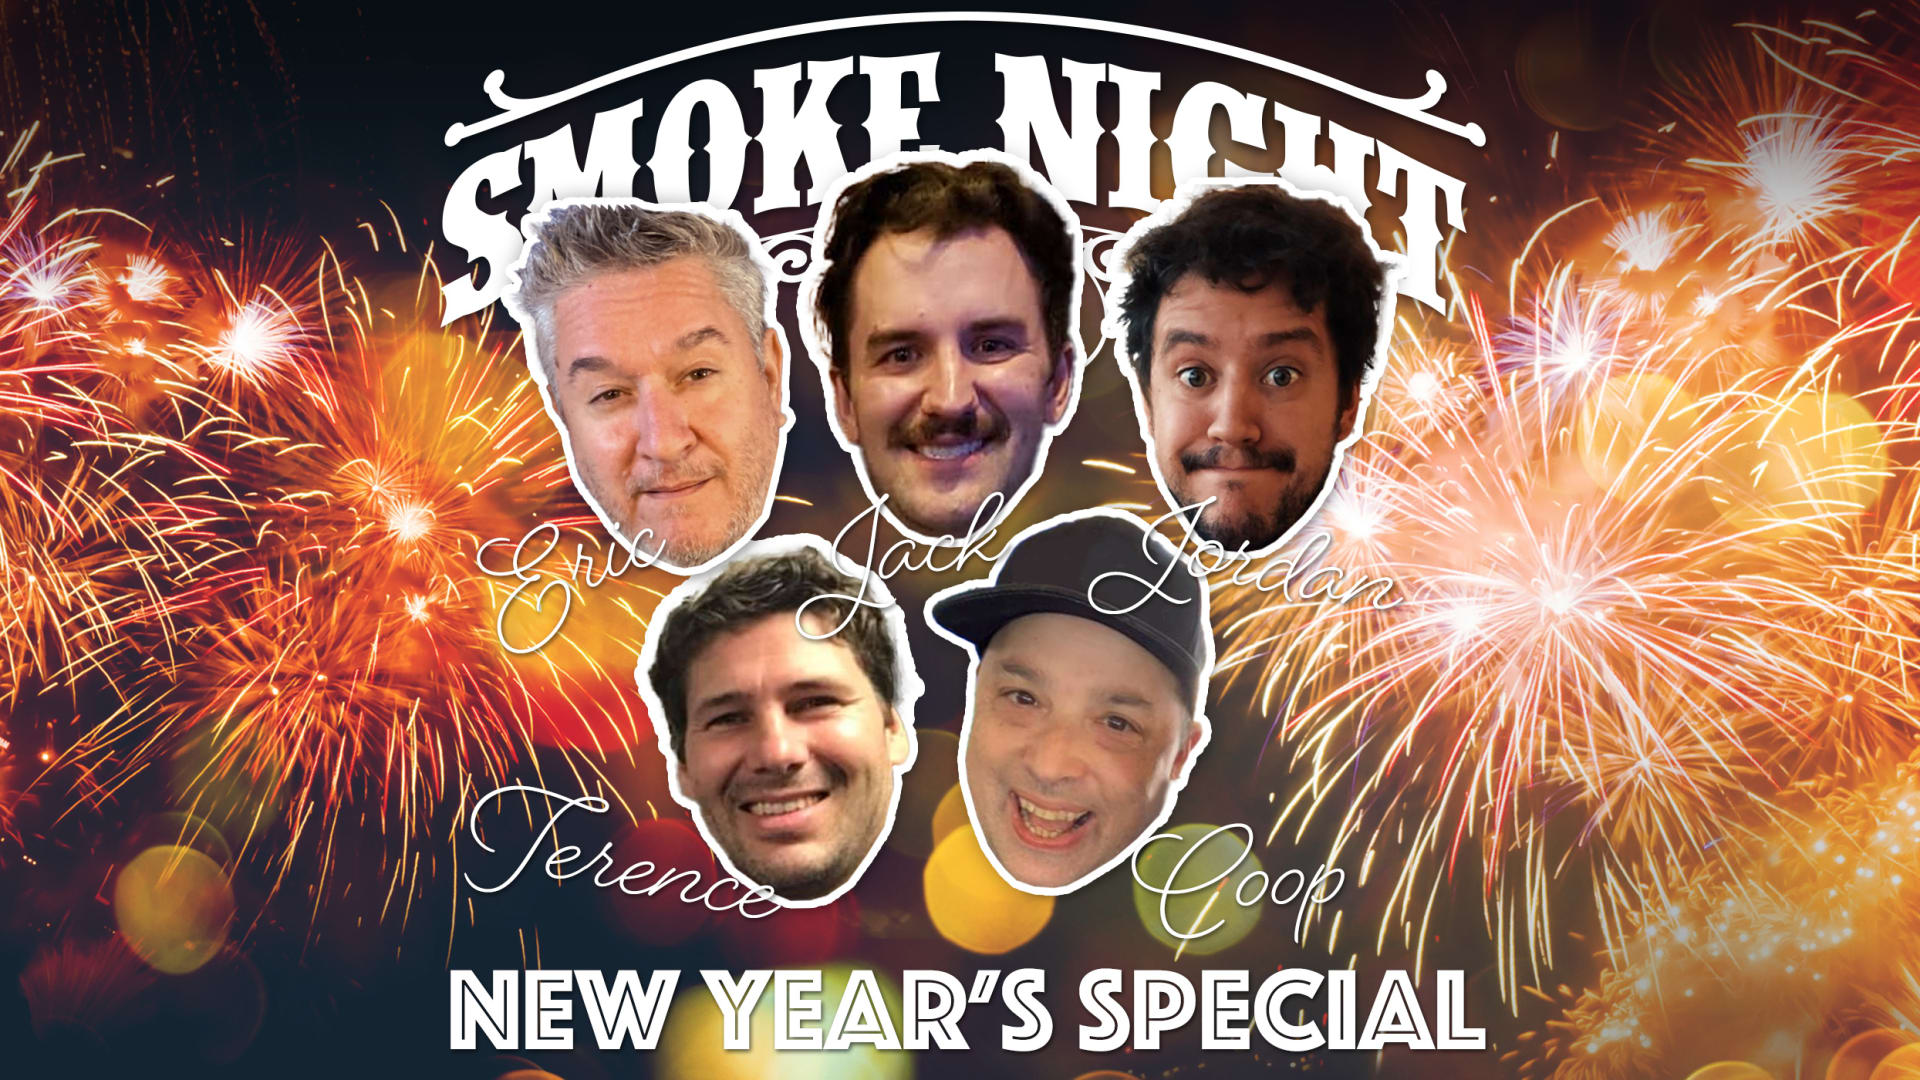 Smoke Night LIVE – New Year's Special Featured Image